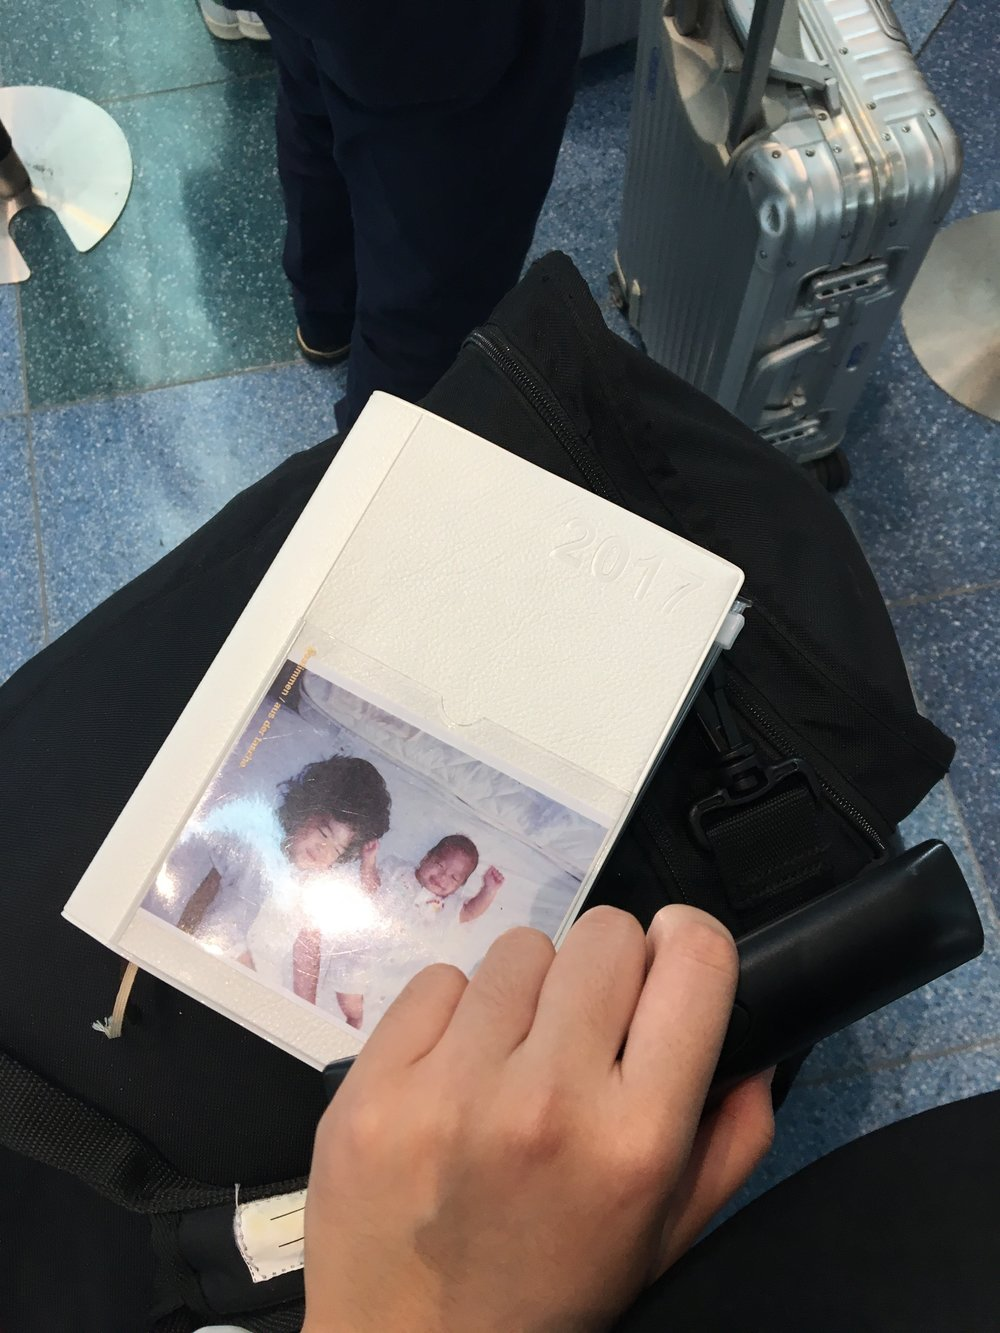 My fifth journal, but I still keep the photo I was given with my first one. - Taken before my flight back to New York from Tokyo.